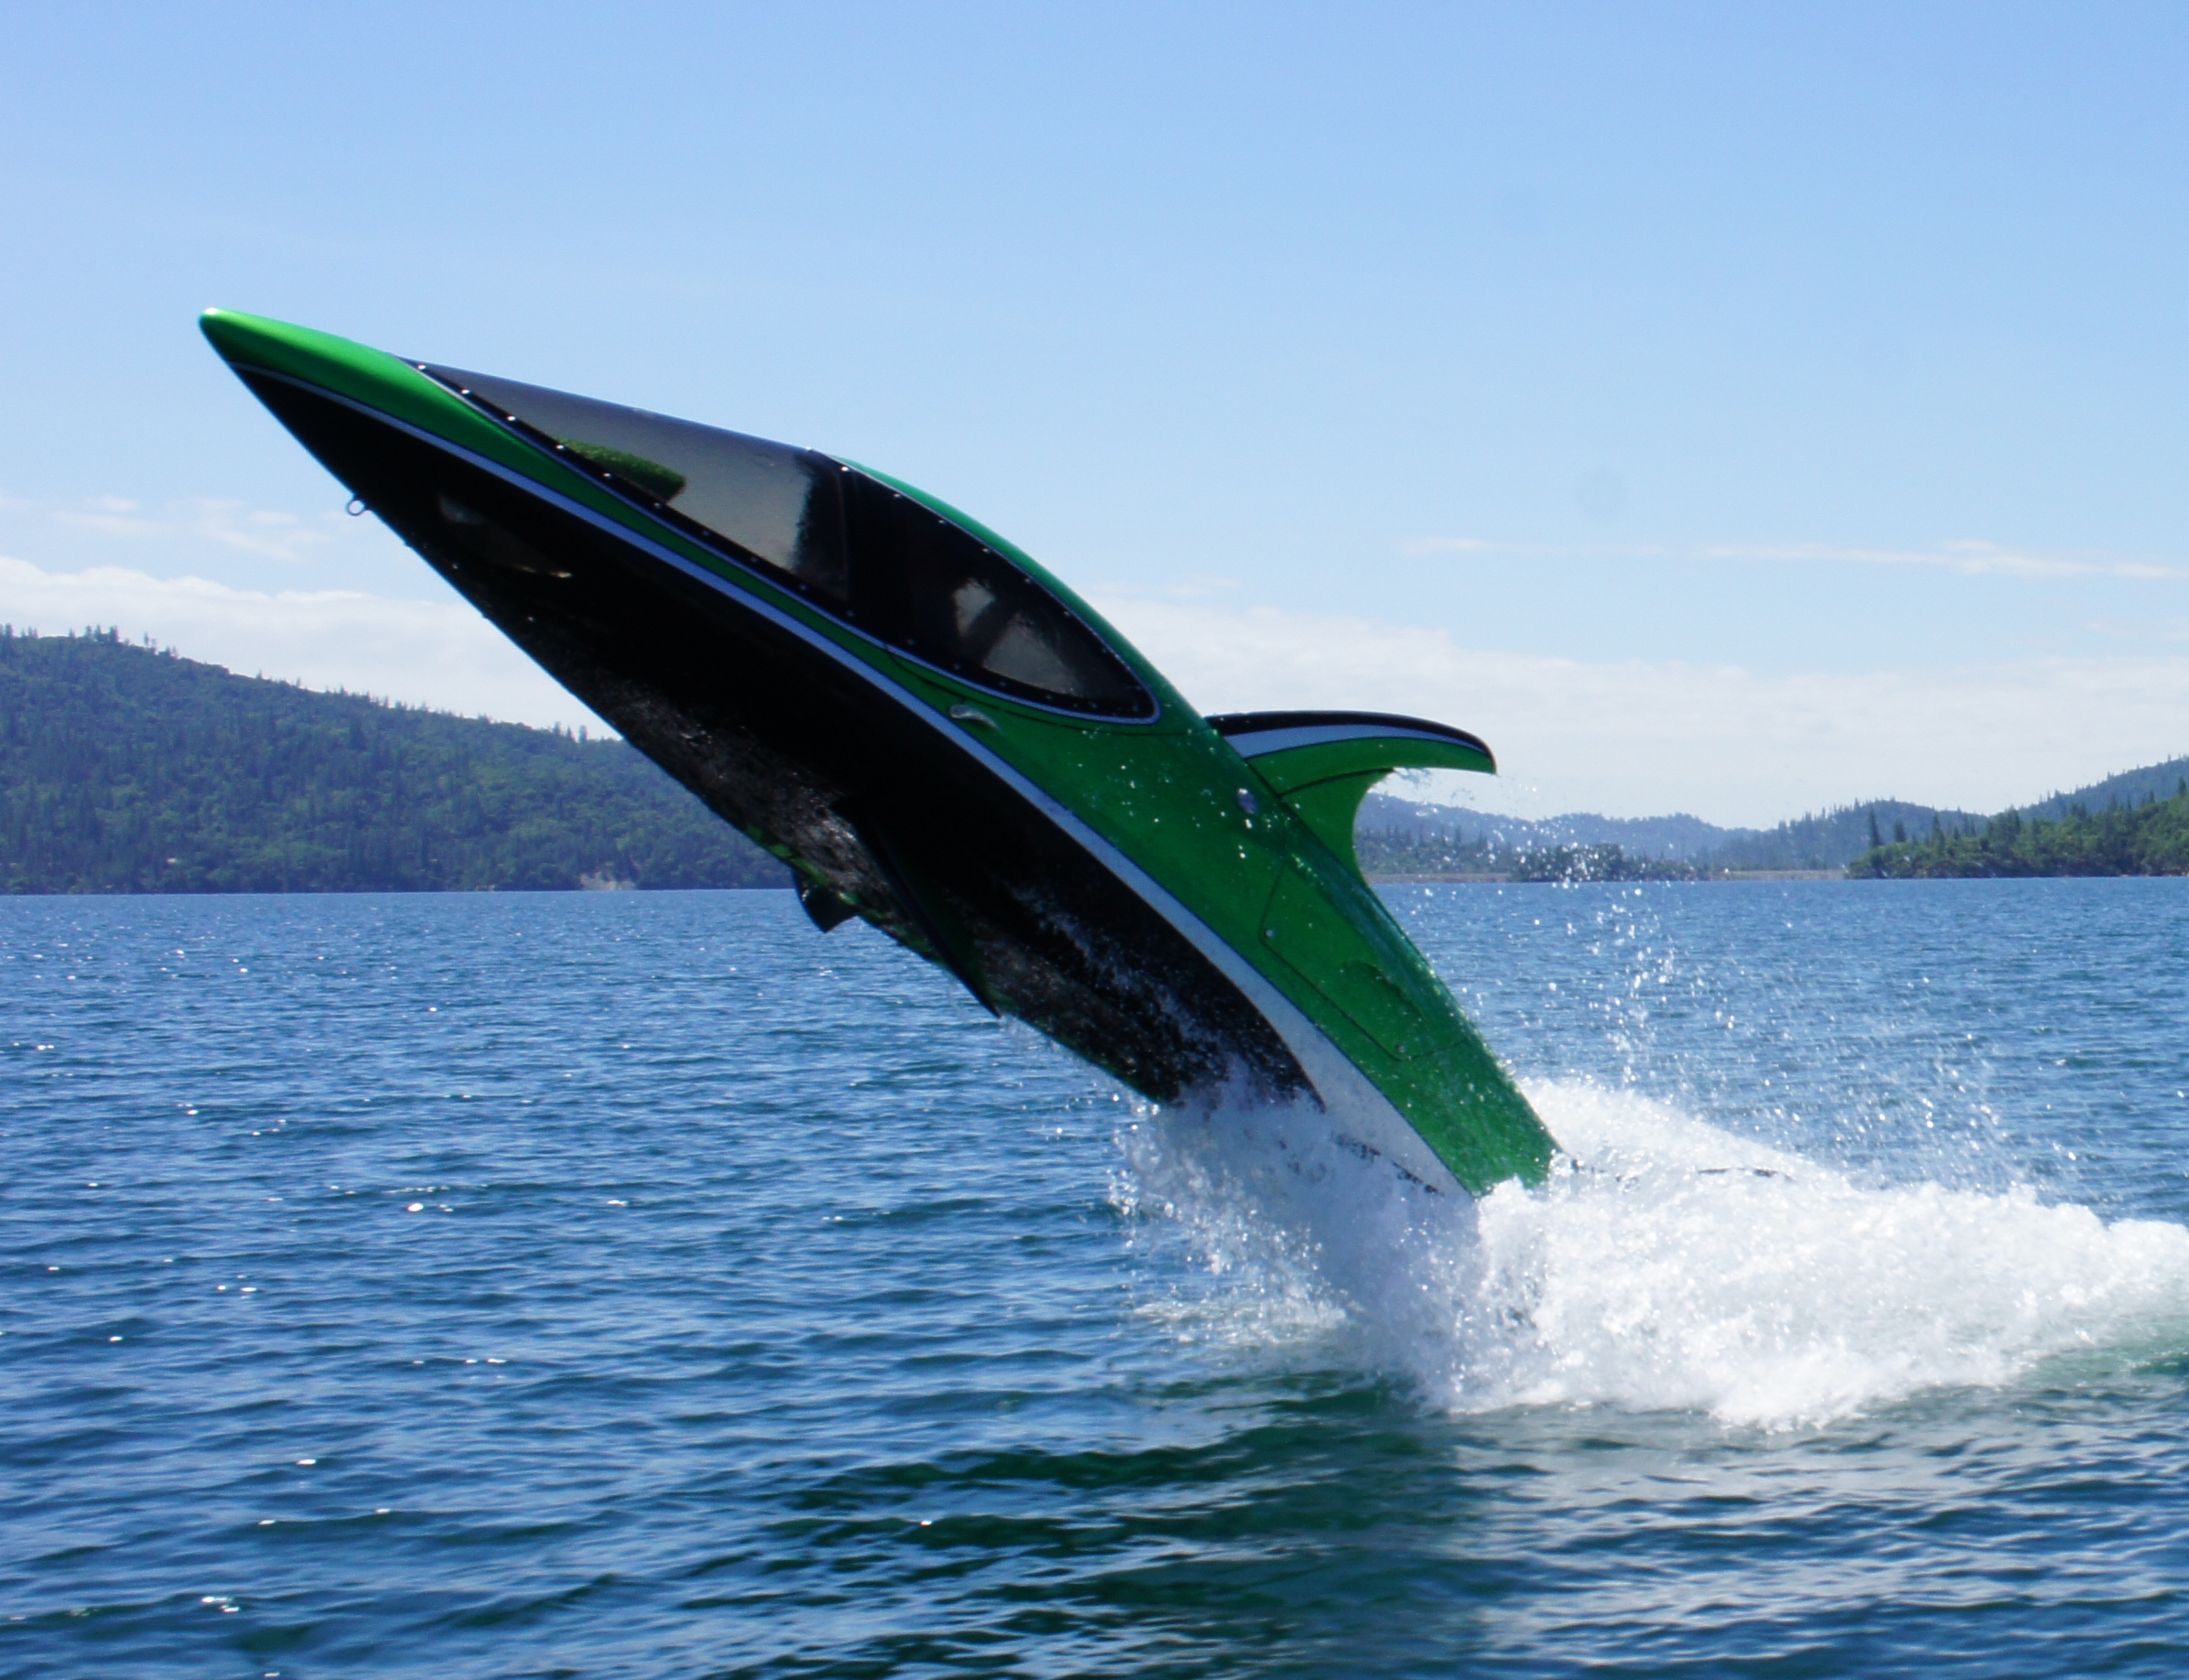 Seabreacher A Submersible Water Jet Ski Water Craft